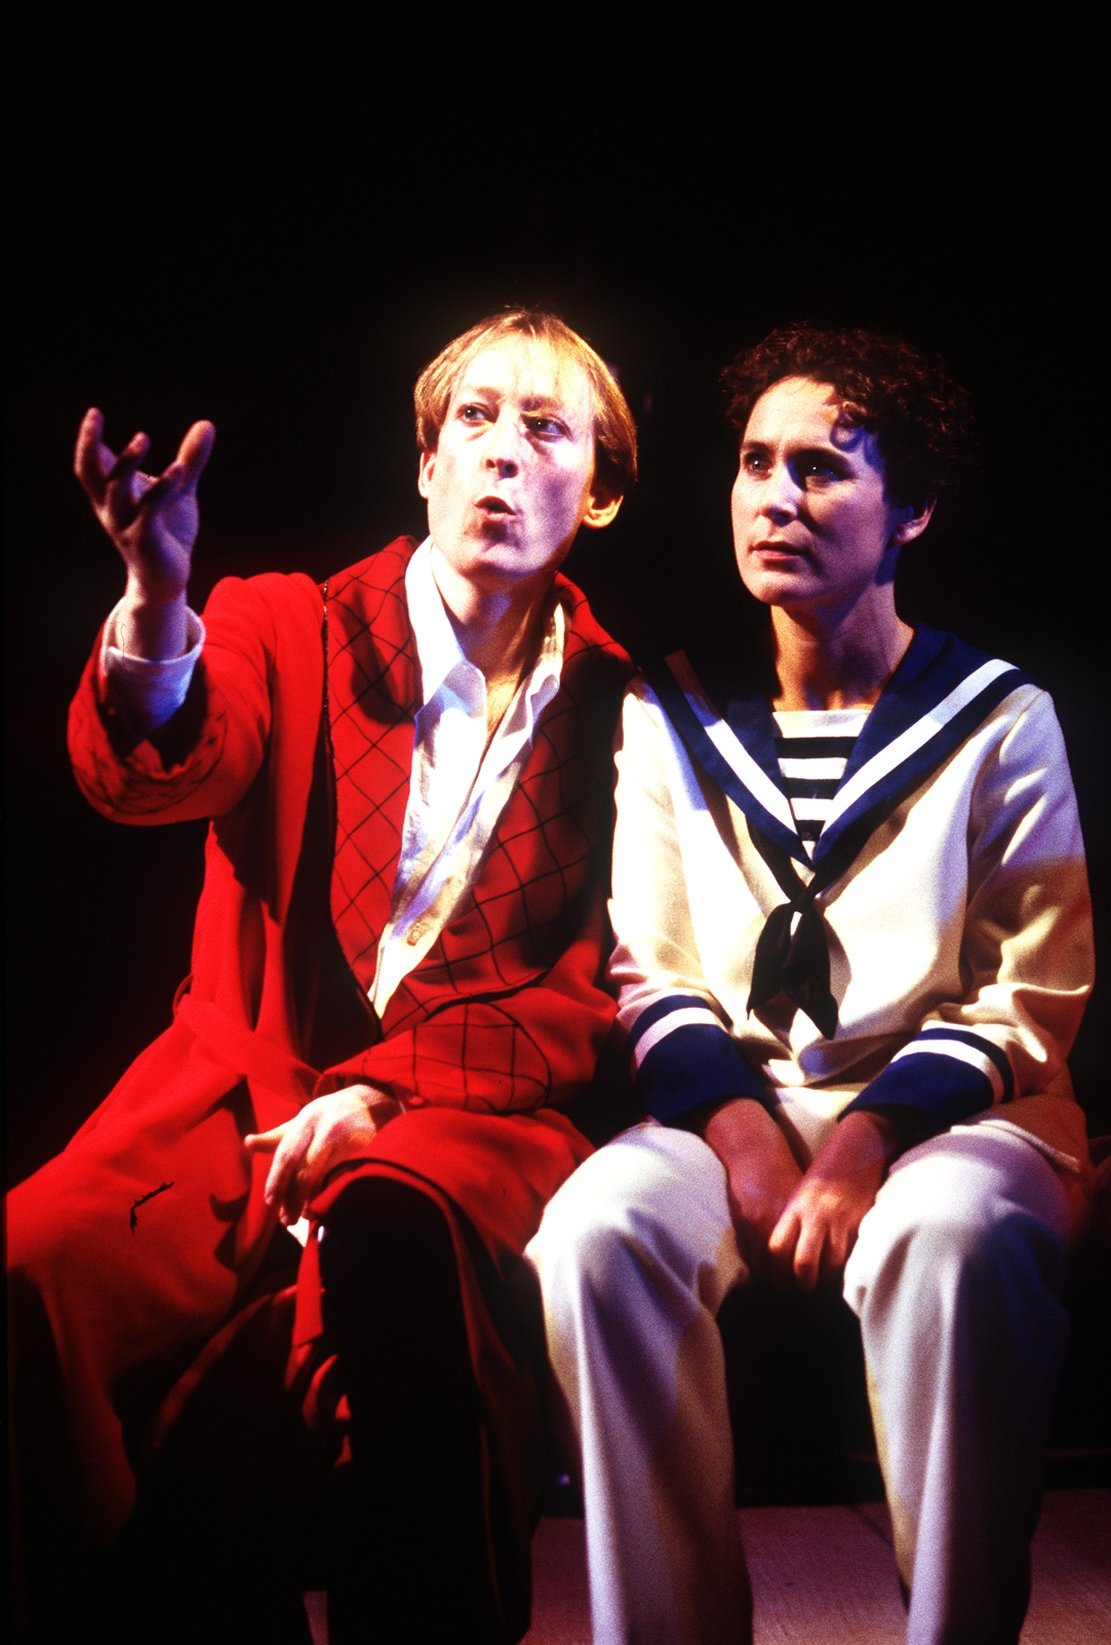 Orsino and Viola sit side by side with Orsino in a red dressing gown and Viola dressed as Cesario in a sailor's uniform in the 1998 production of Twelfth Night.